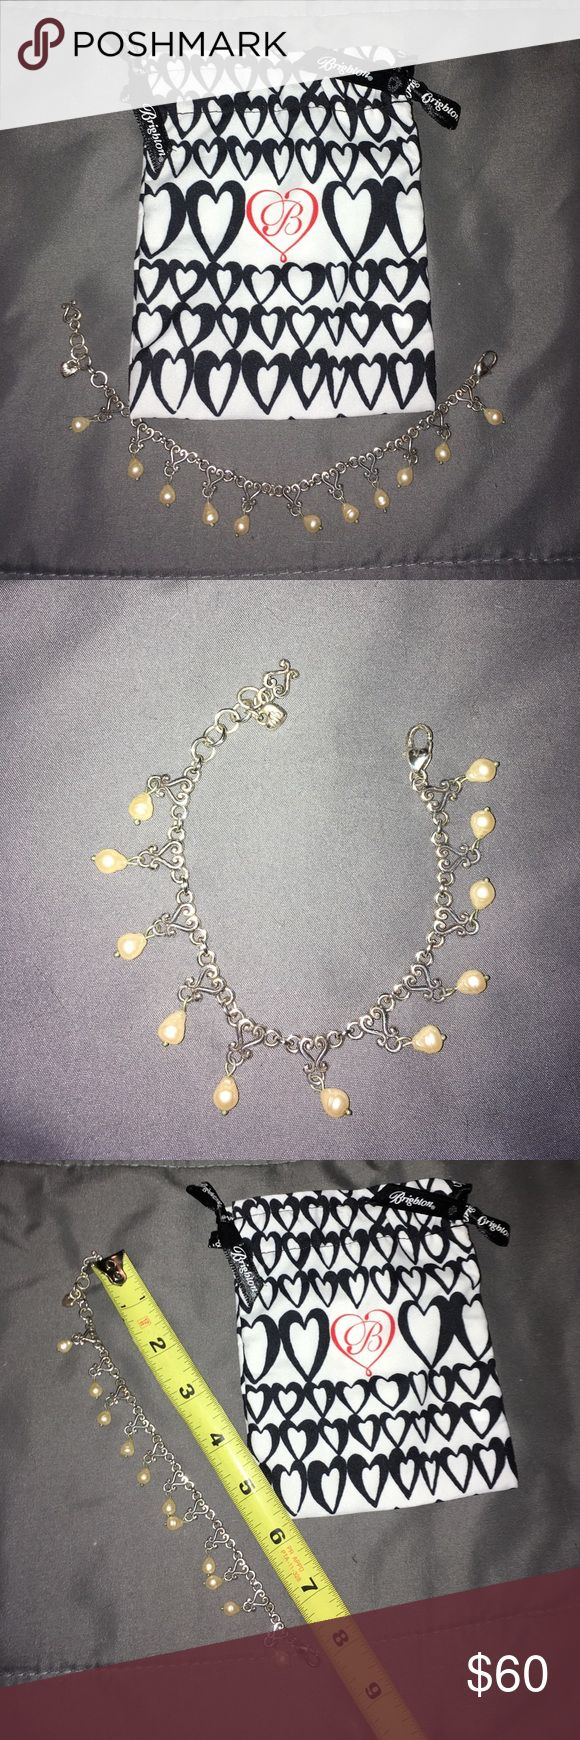 💕Retired Brighton Vivaldi Pearl Bracelet💕 NWOT and never worn! Gorgeous retired piece by Brighton! Would be an excellent addition to any word robe! 😊💎🍀 Jewelry Bracelets